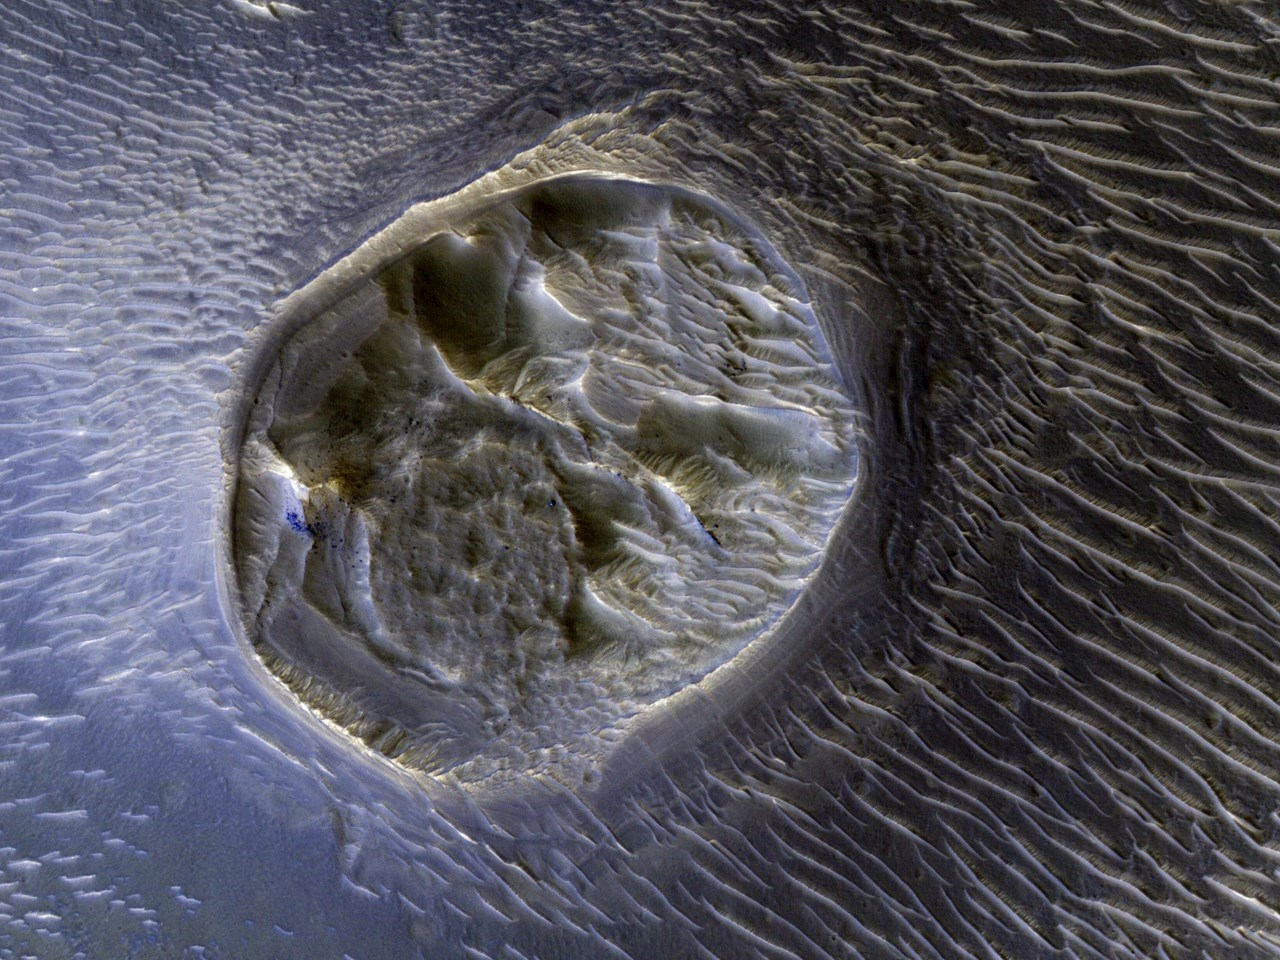 A Mesa in Noctis Labyrinthus